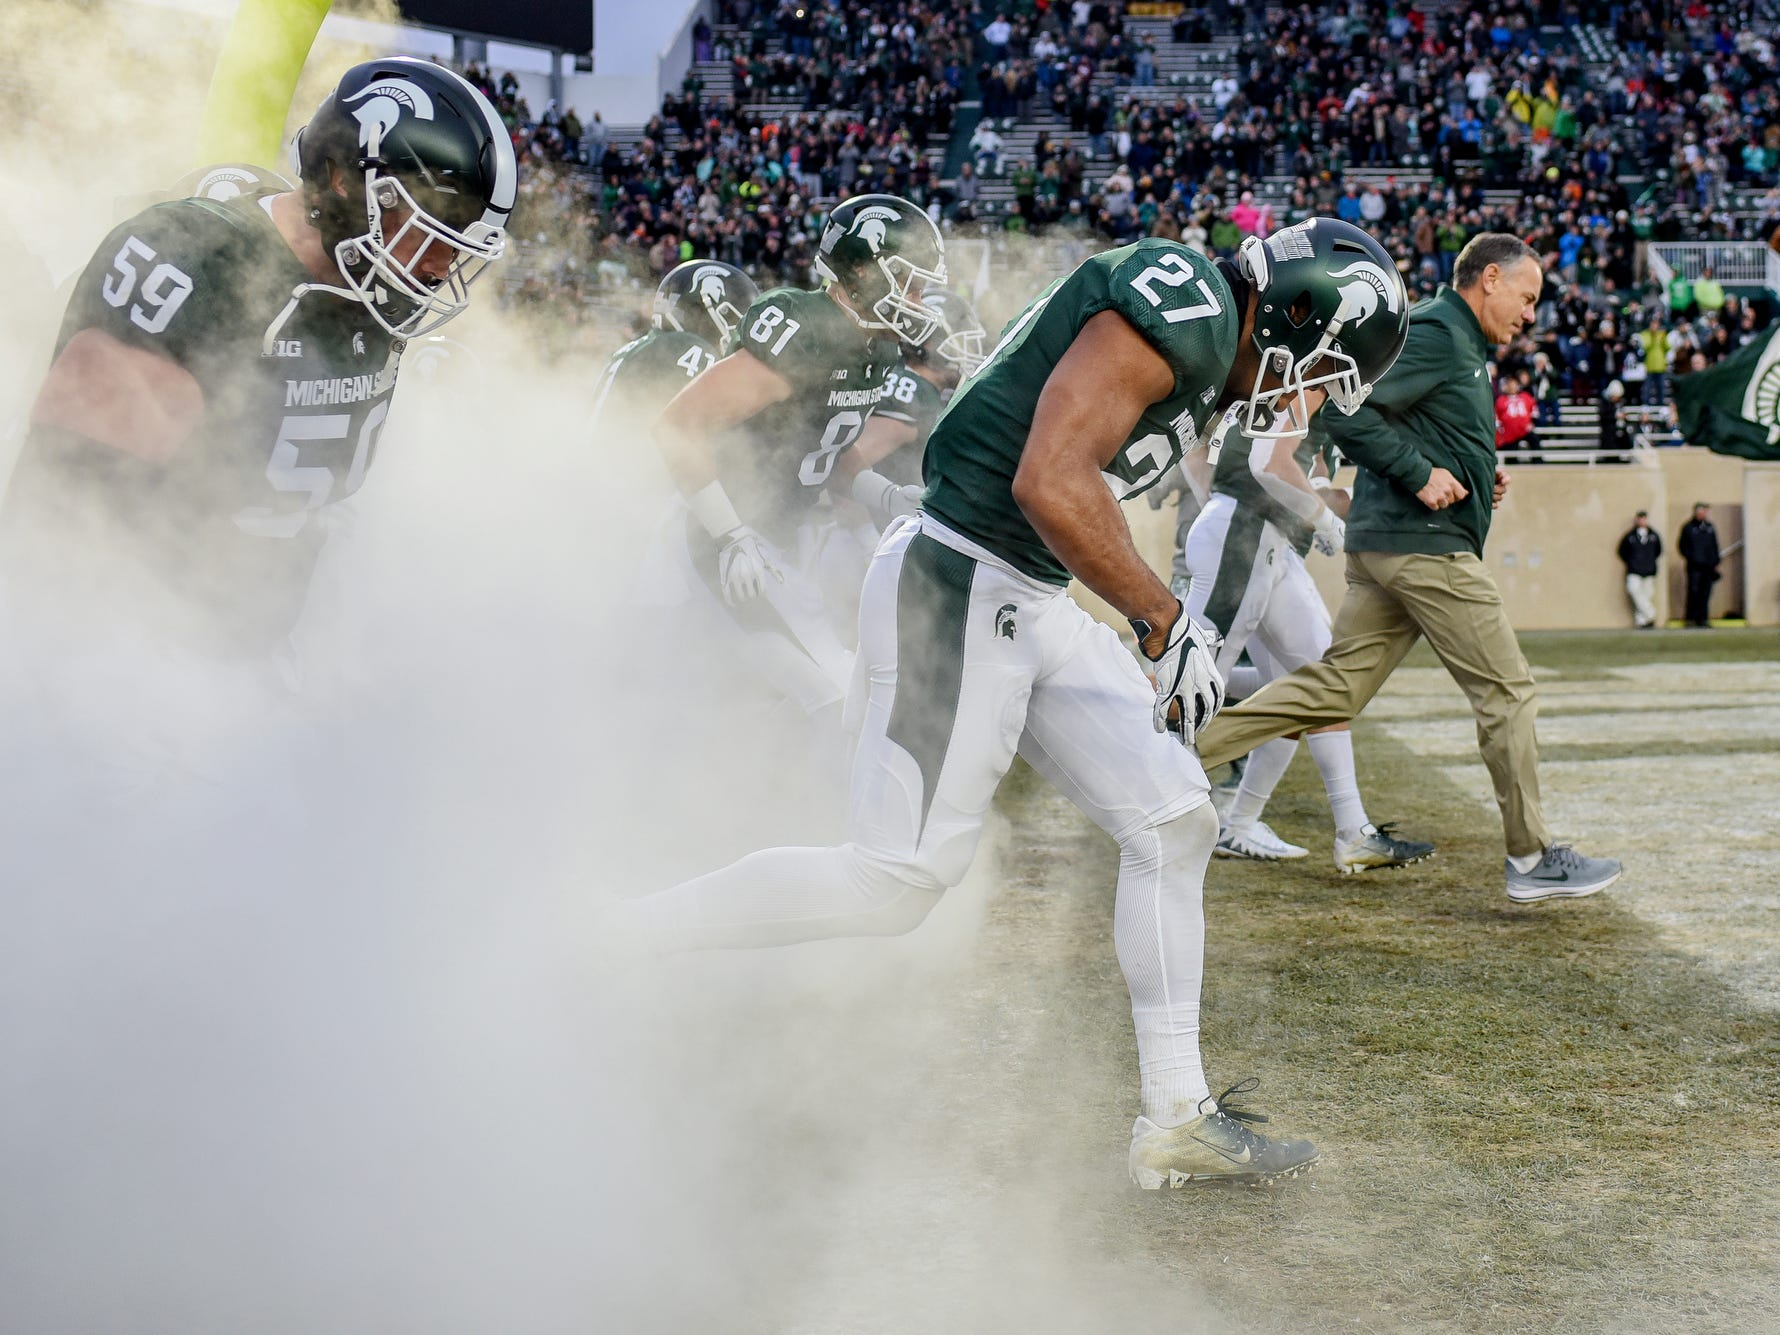 Michigan State's Khari Willis, center, takes the field with the rest of the team before the game against Rutgers on Saturday, Nov. 24, 2018, at Spartan Stadium in East Lansing.